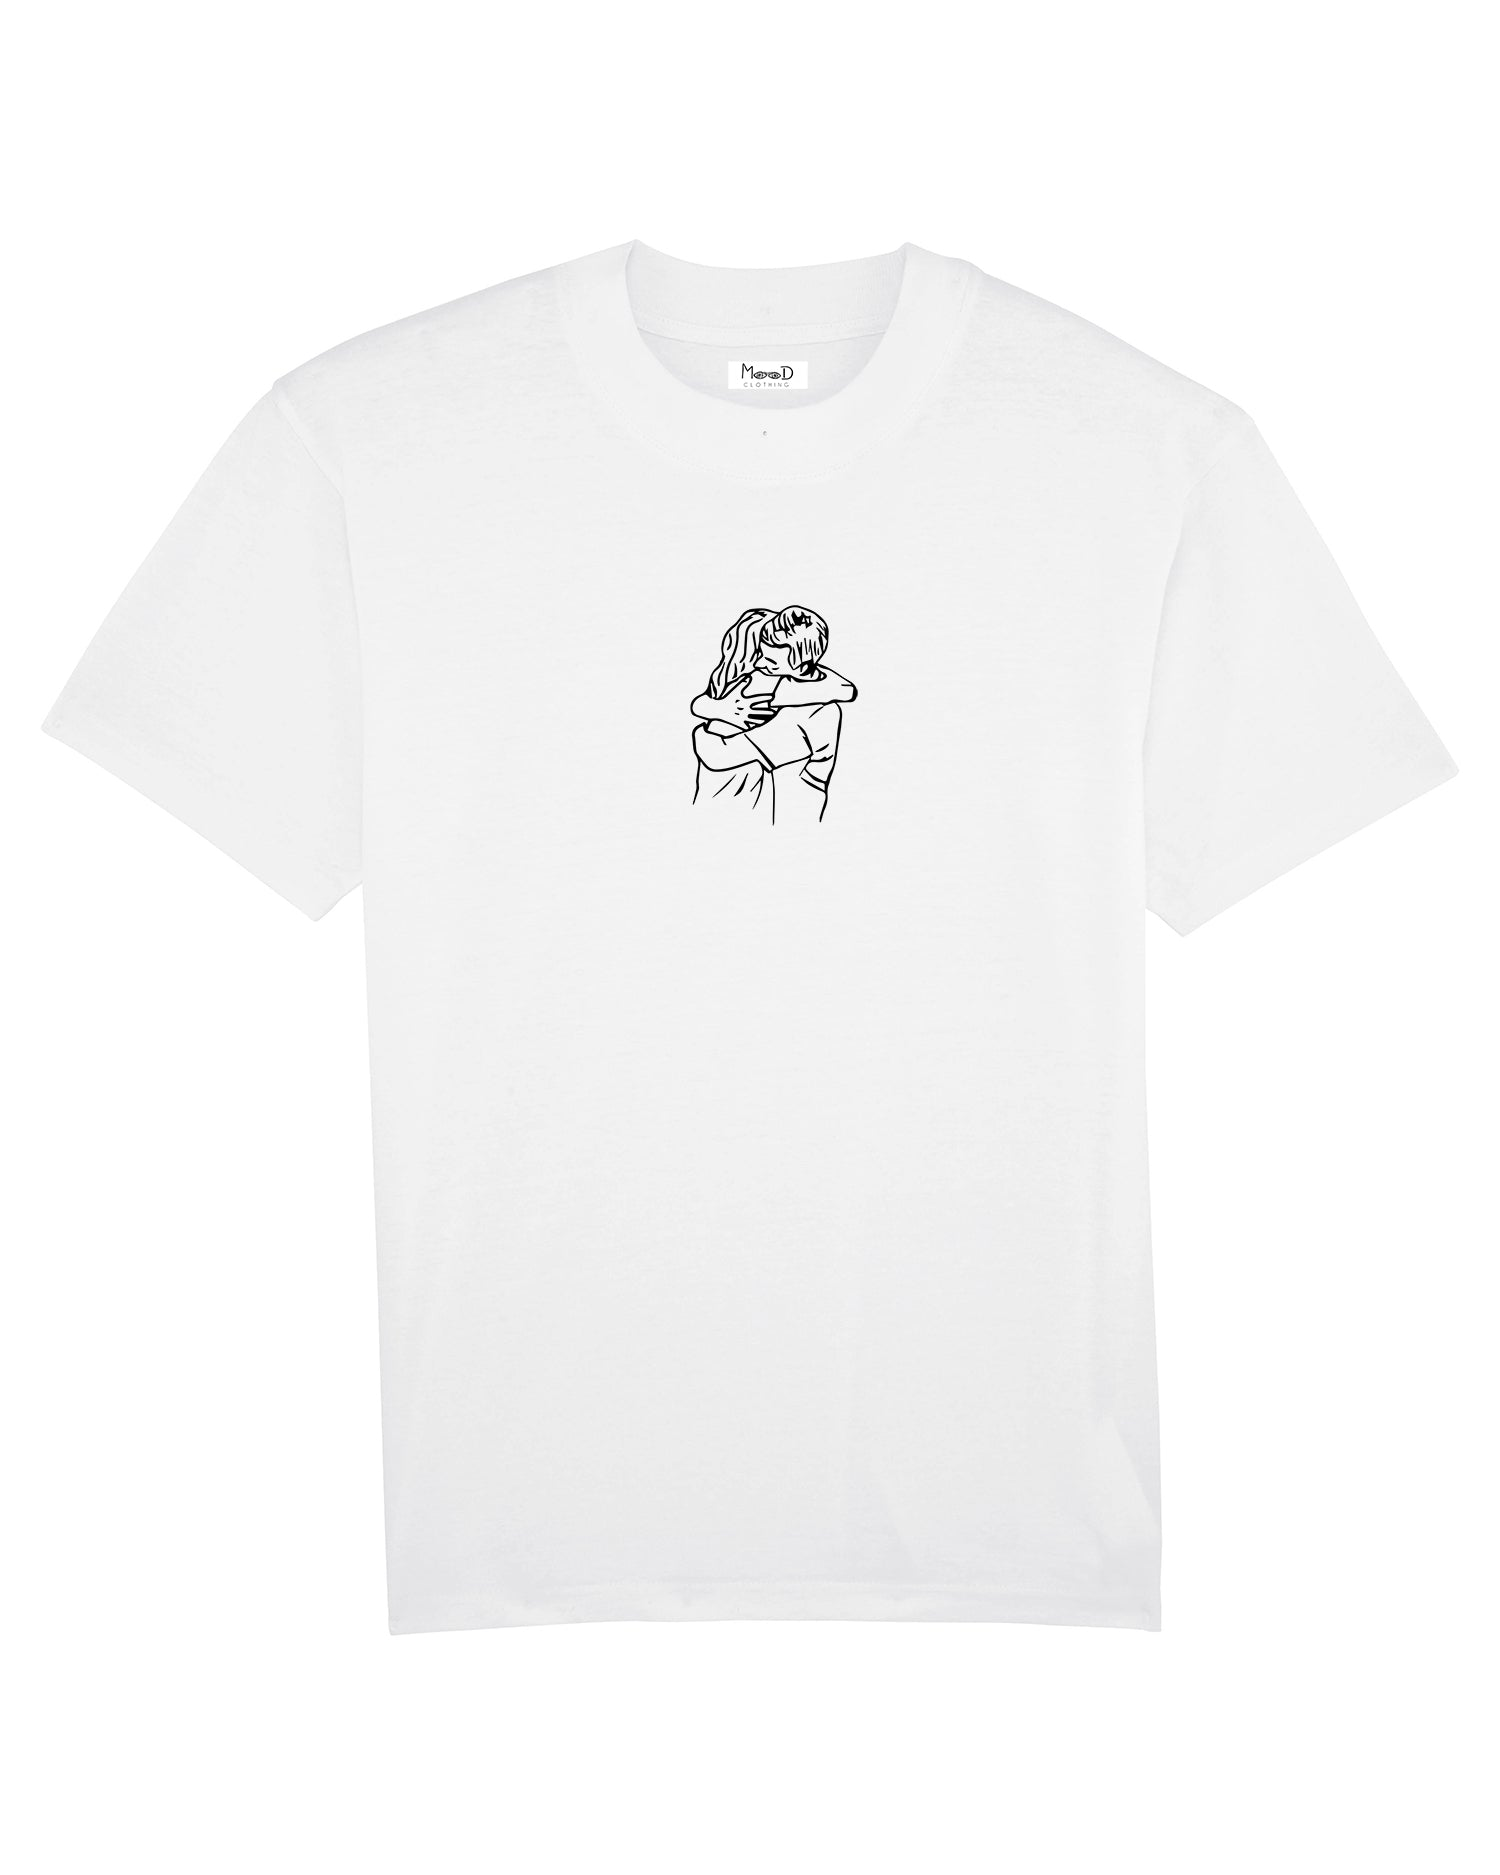 T-shirt Blanc - Hug - Mood Clothing